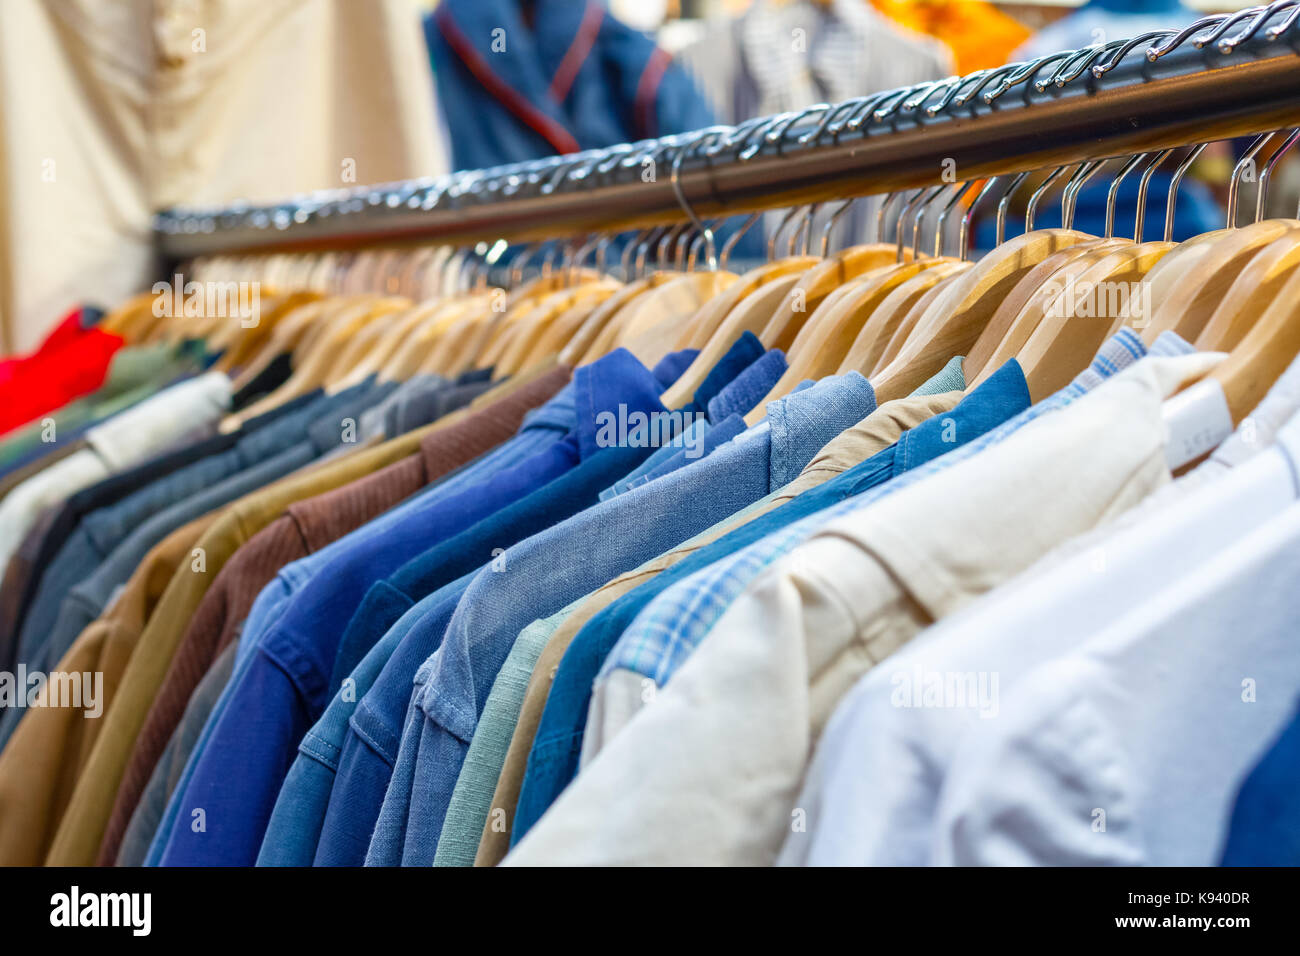 Rail of second-hand clothes on display at Old Spitalfields Market in London Stock Photo